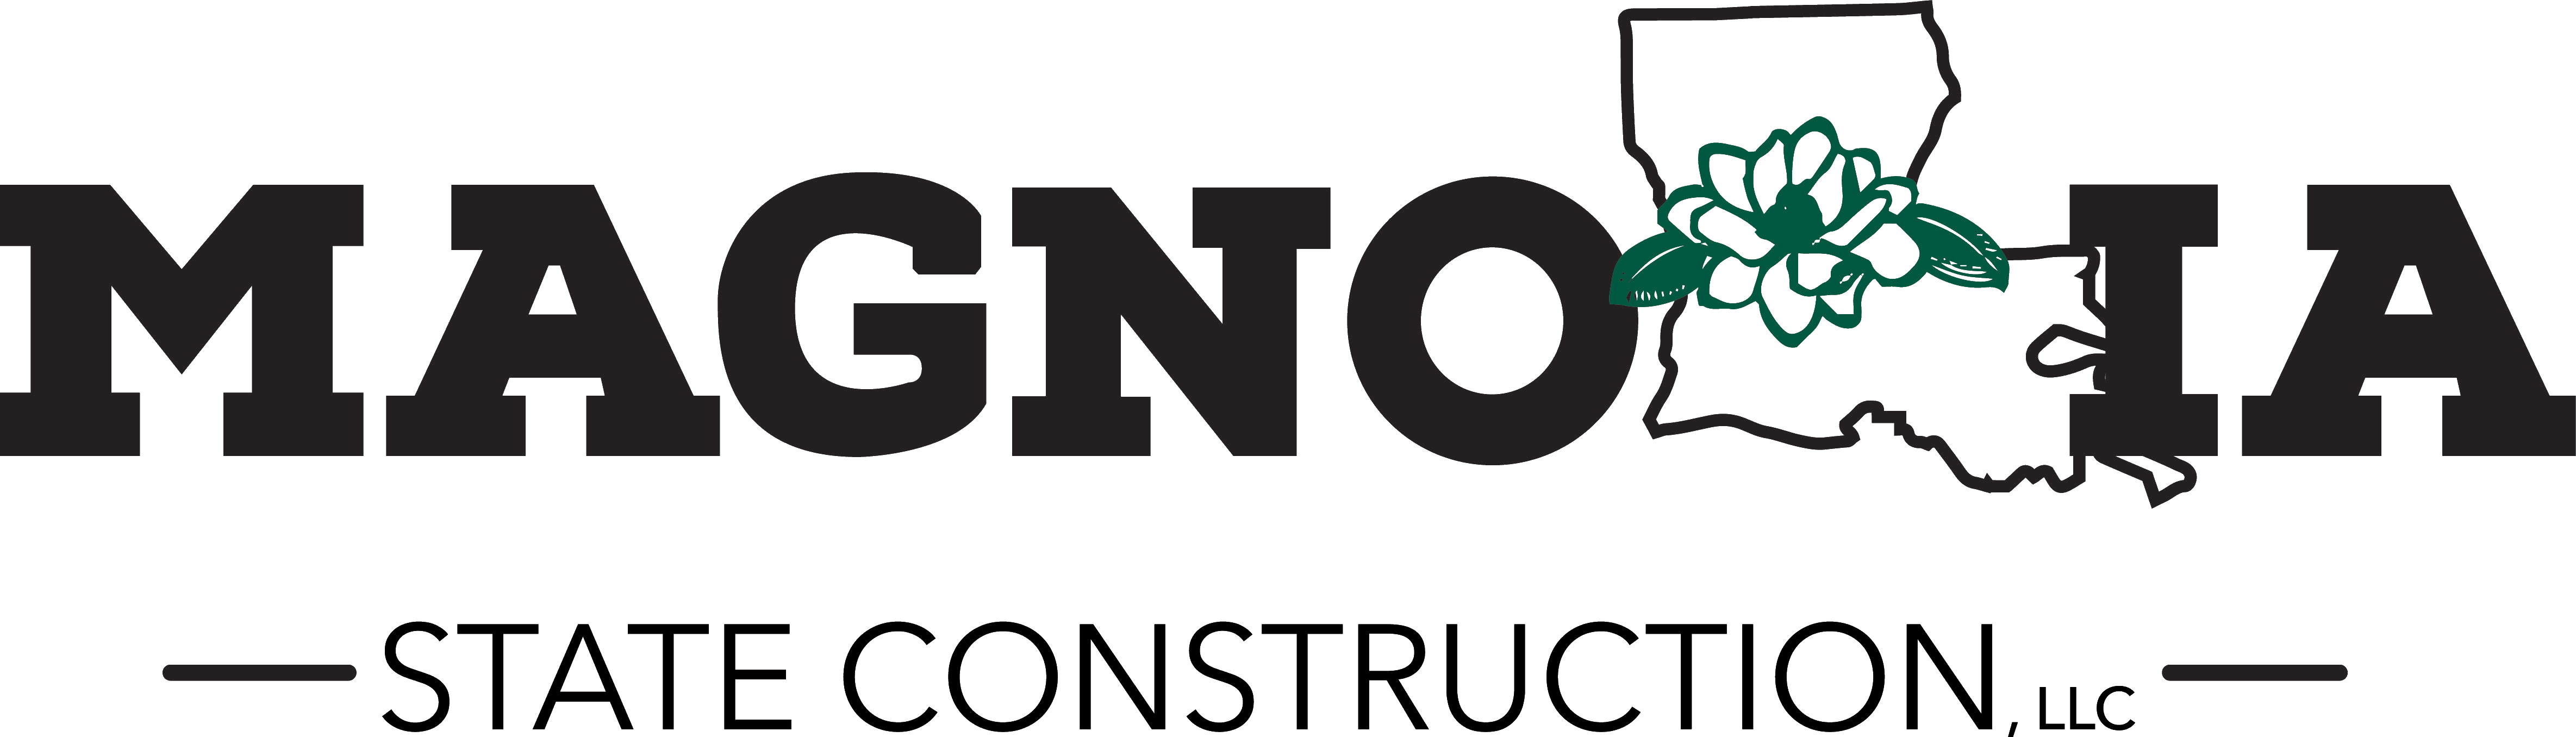 Magnolia State Construction